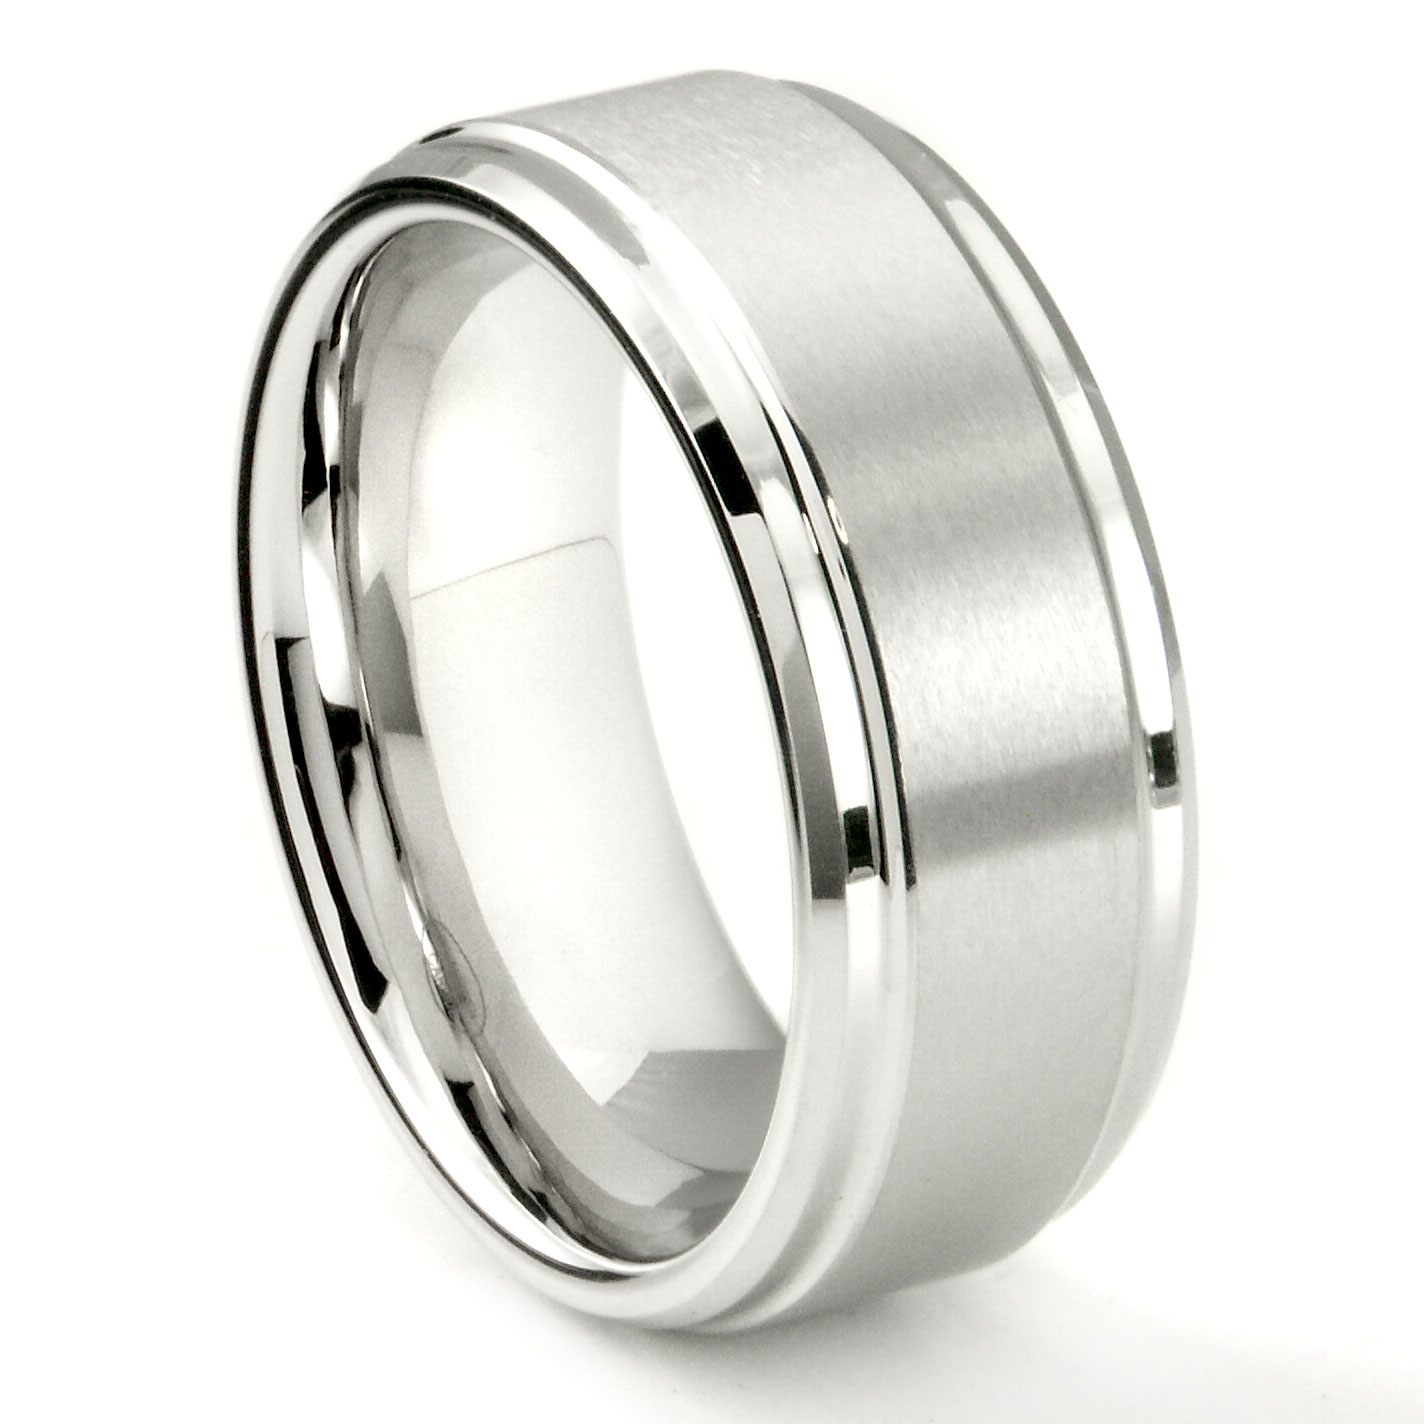 black rings tone item your personalized find two tungsten easily silver p